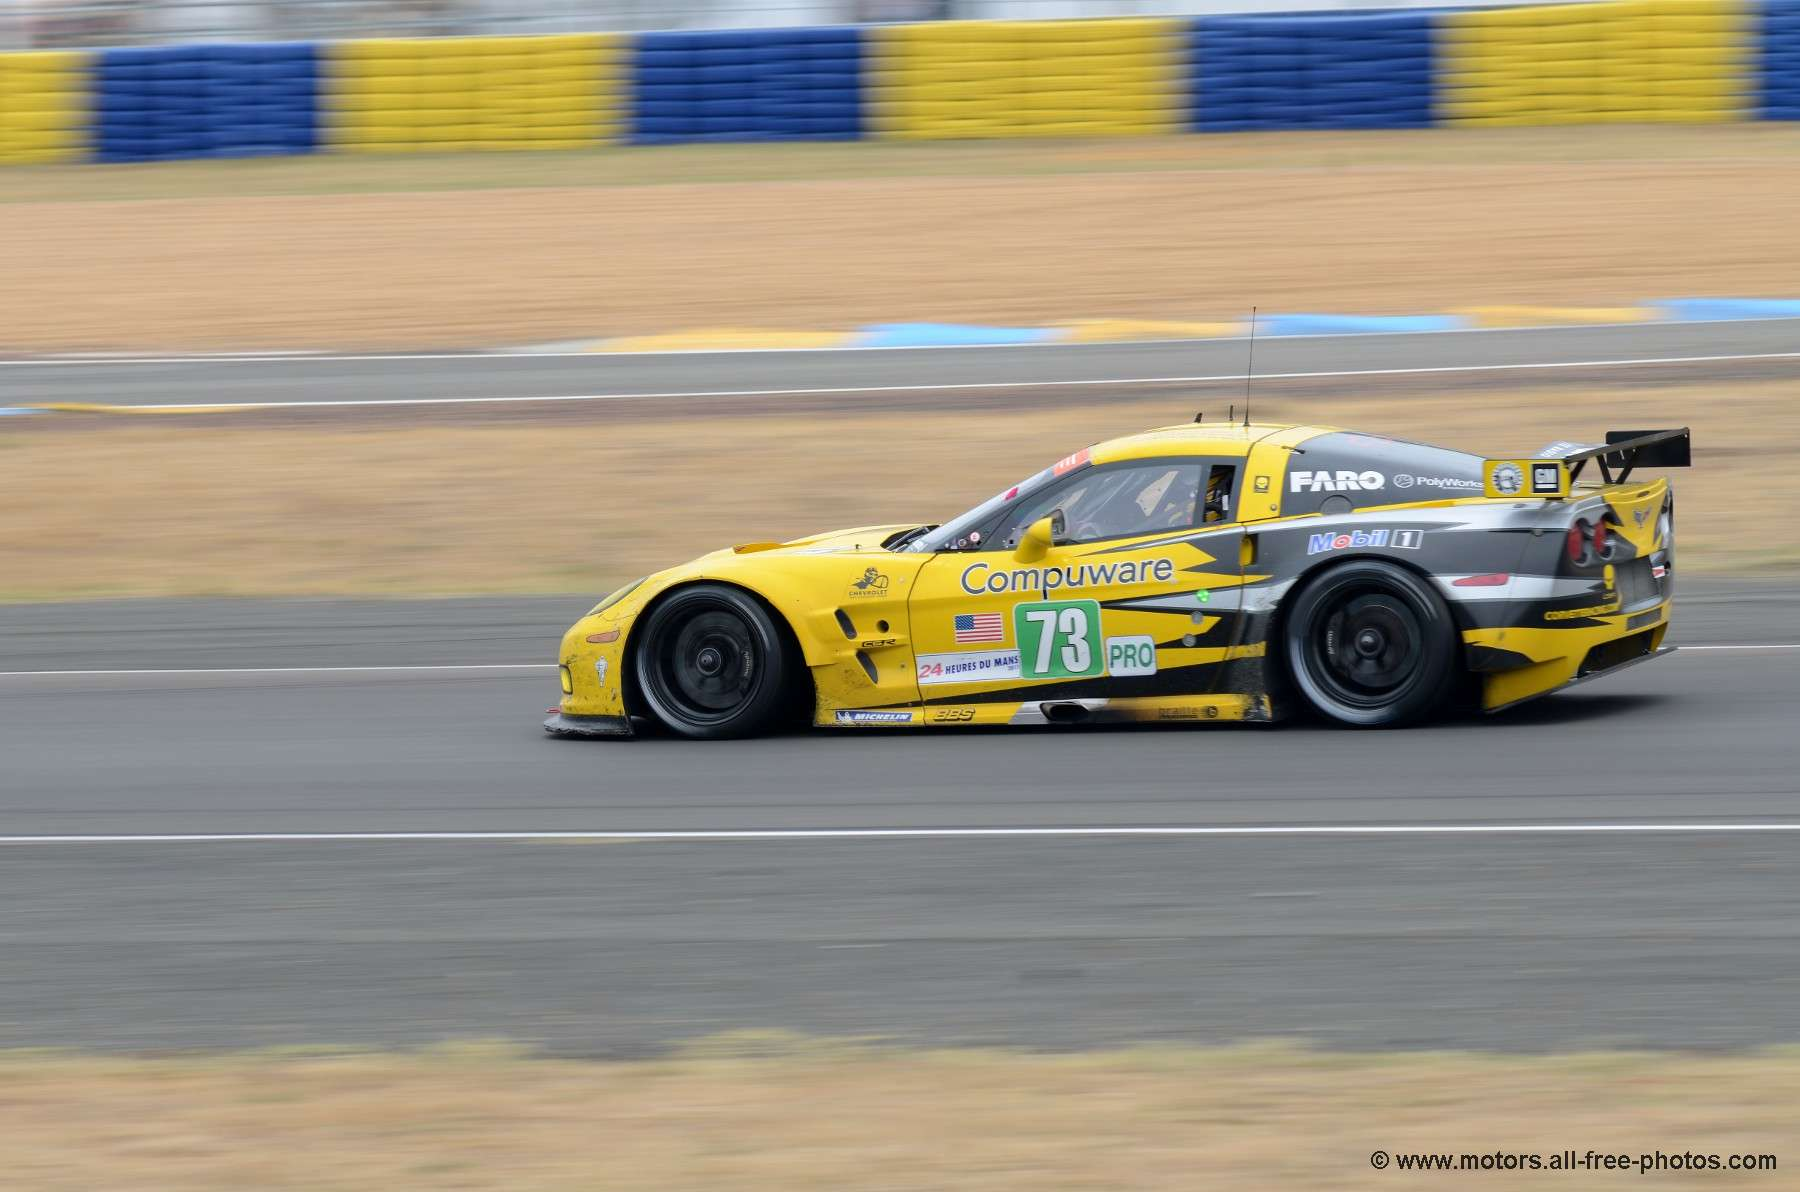 Corvette C6 ZR1 - Team Corvette Racing